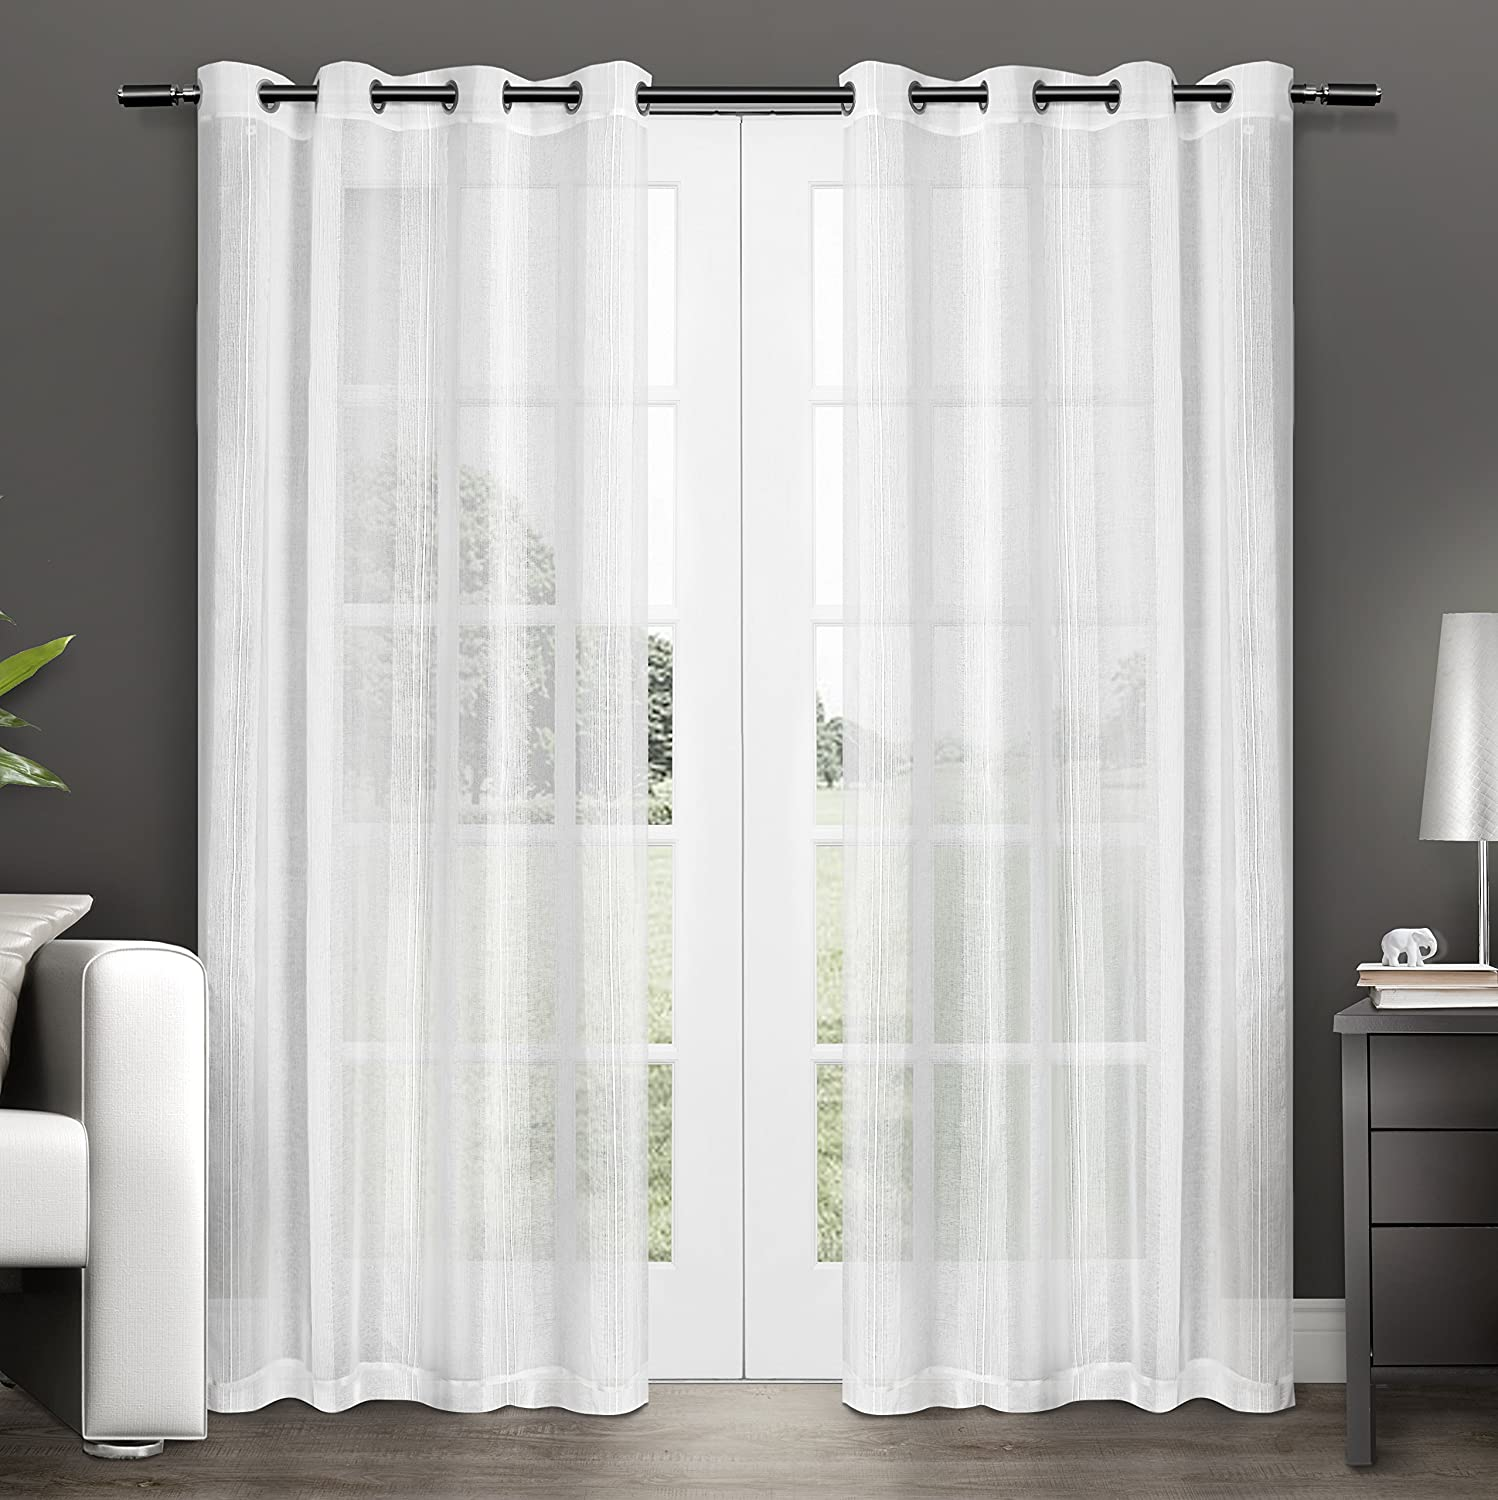 Sheer Curtain Panels  Ease Bedding With Style. Unusual Wall Decor. Rustic Dining Room Chairs. Dining Room Sets With Bench And Chairs. Event Decorating Classes. Home Depot Home Decor. Decorative Vase Sets. Newest Living Room Designs. Ethan Allen Dining Room Table